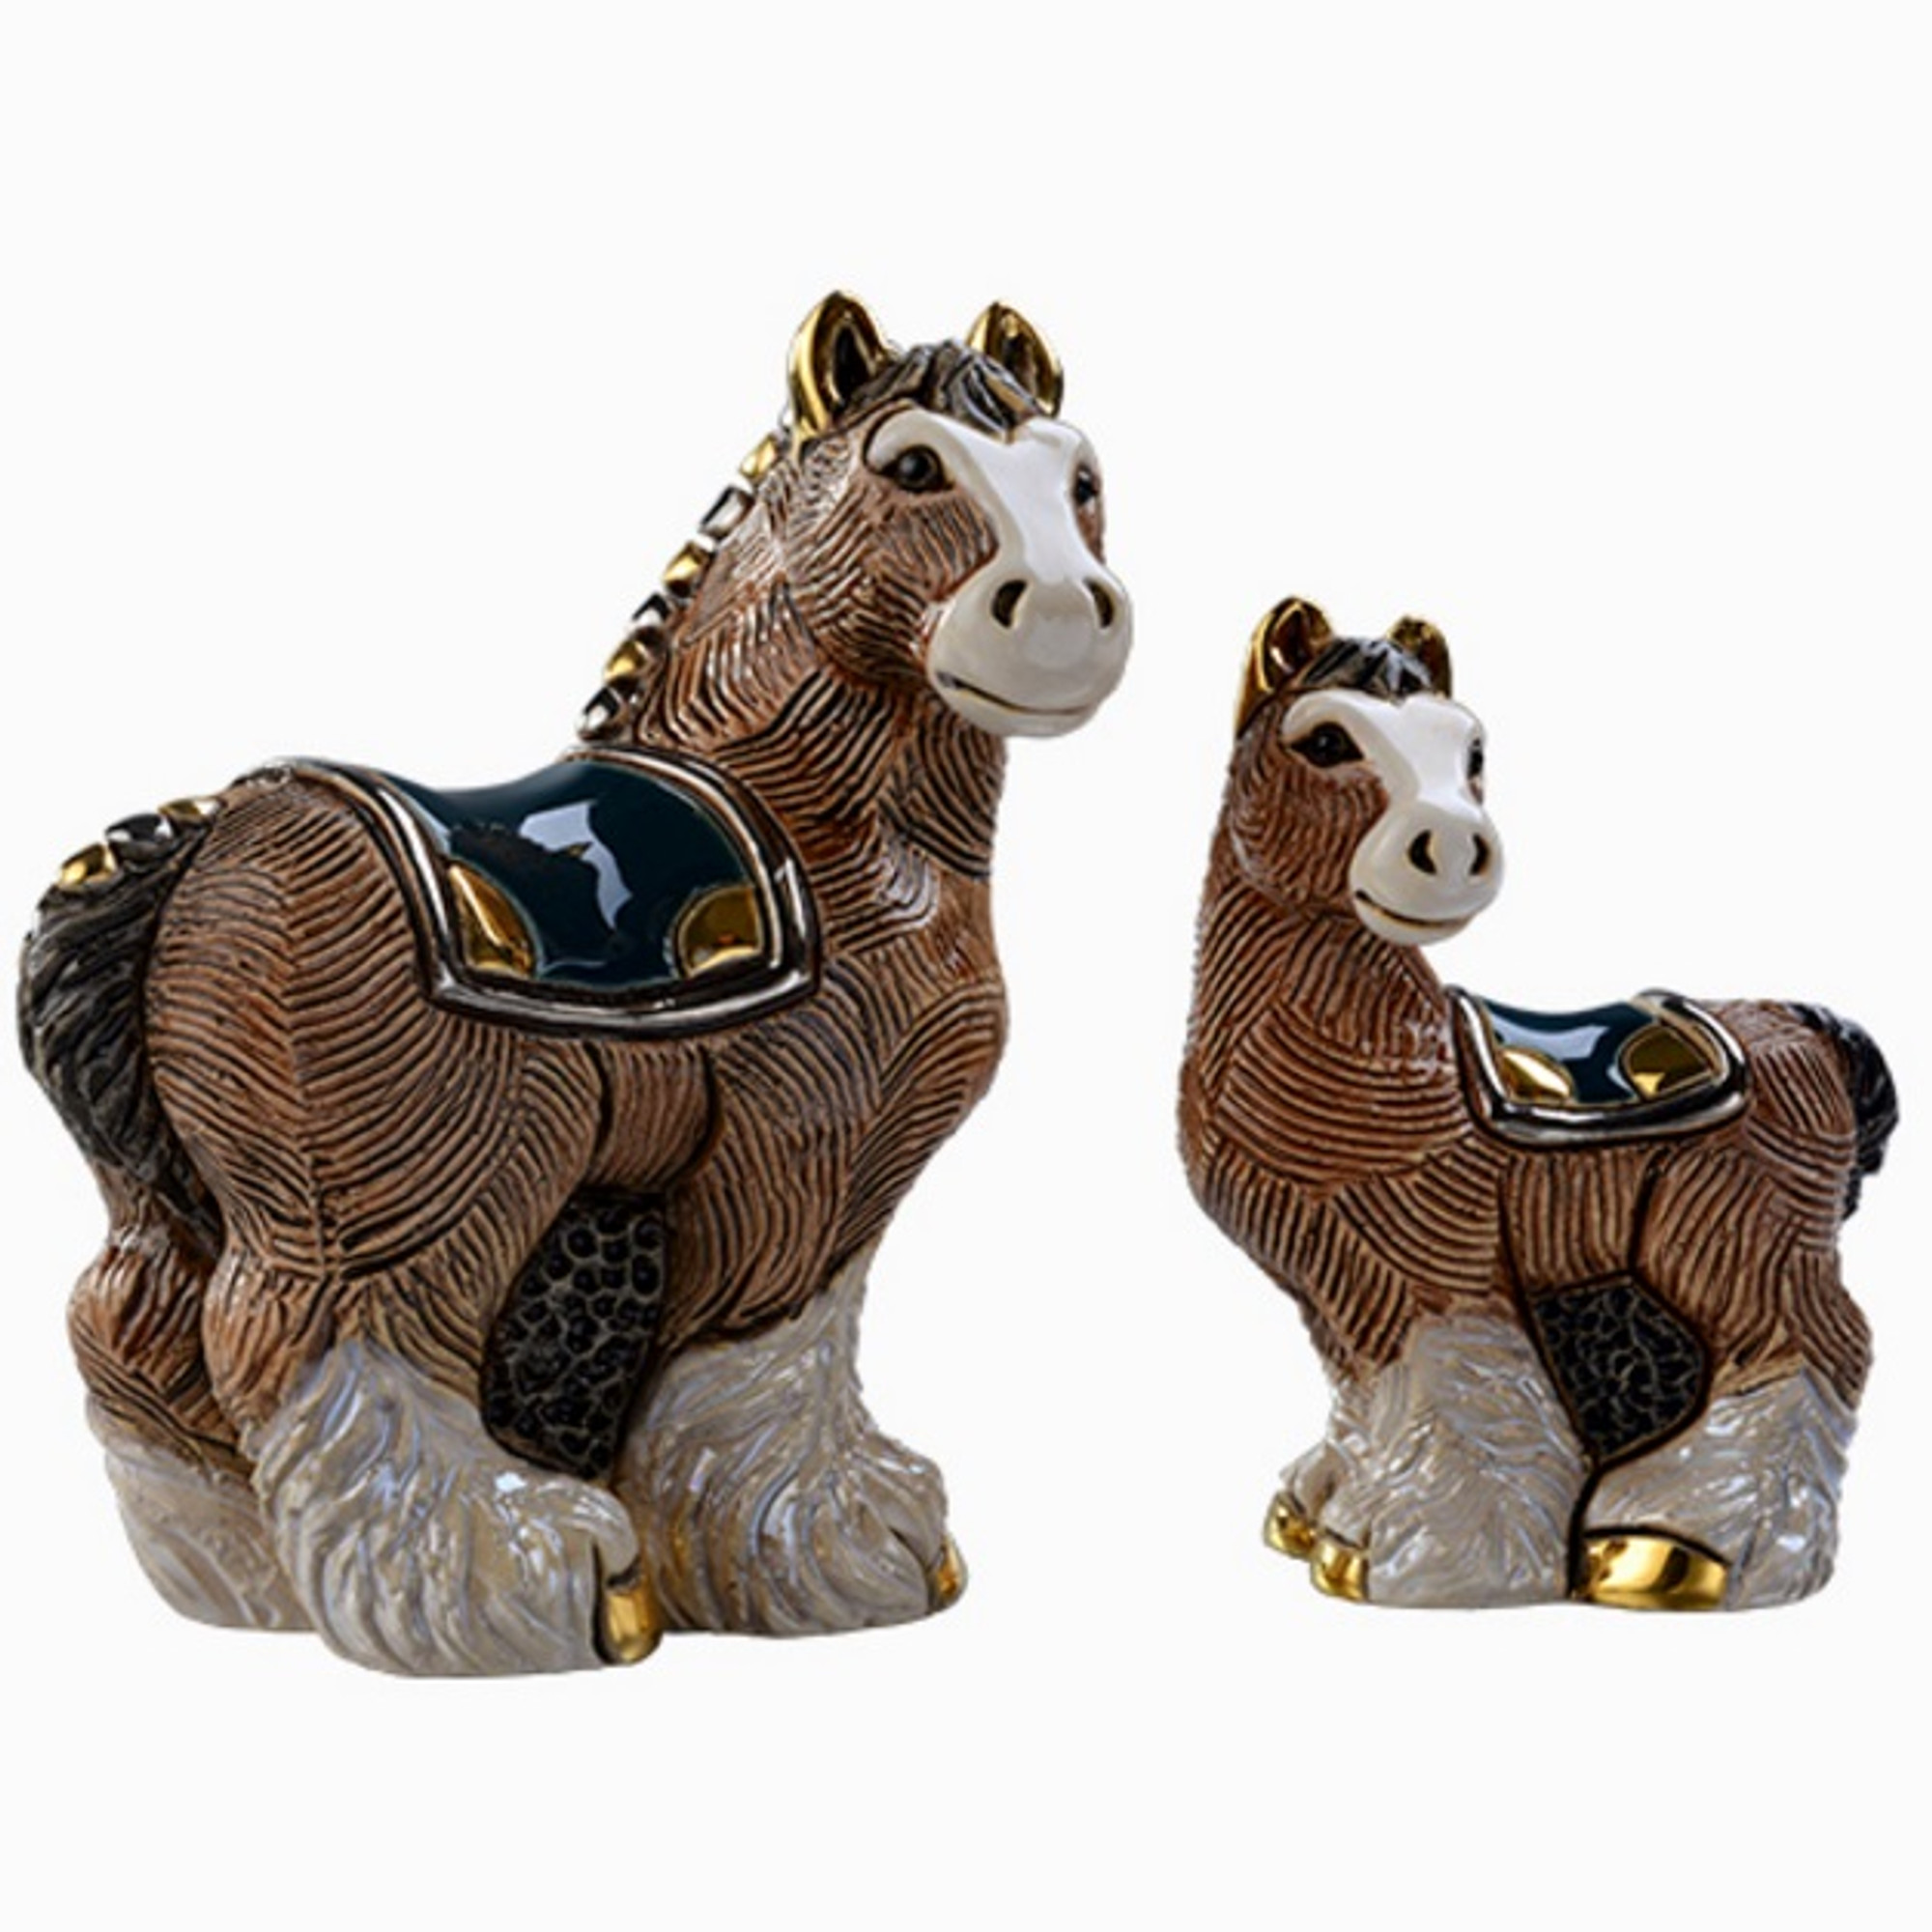 Clydesdale Horse And Baby Ceramic Figurine F147 De Rosa Collection